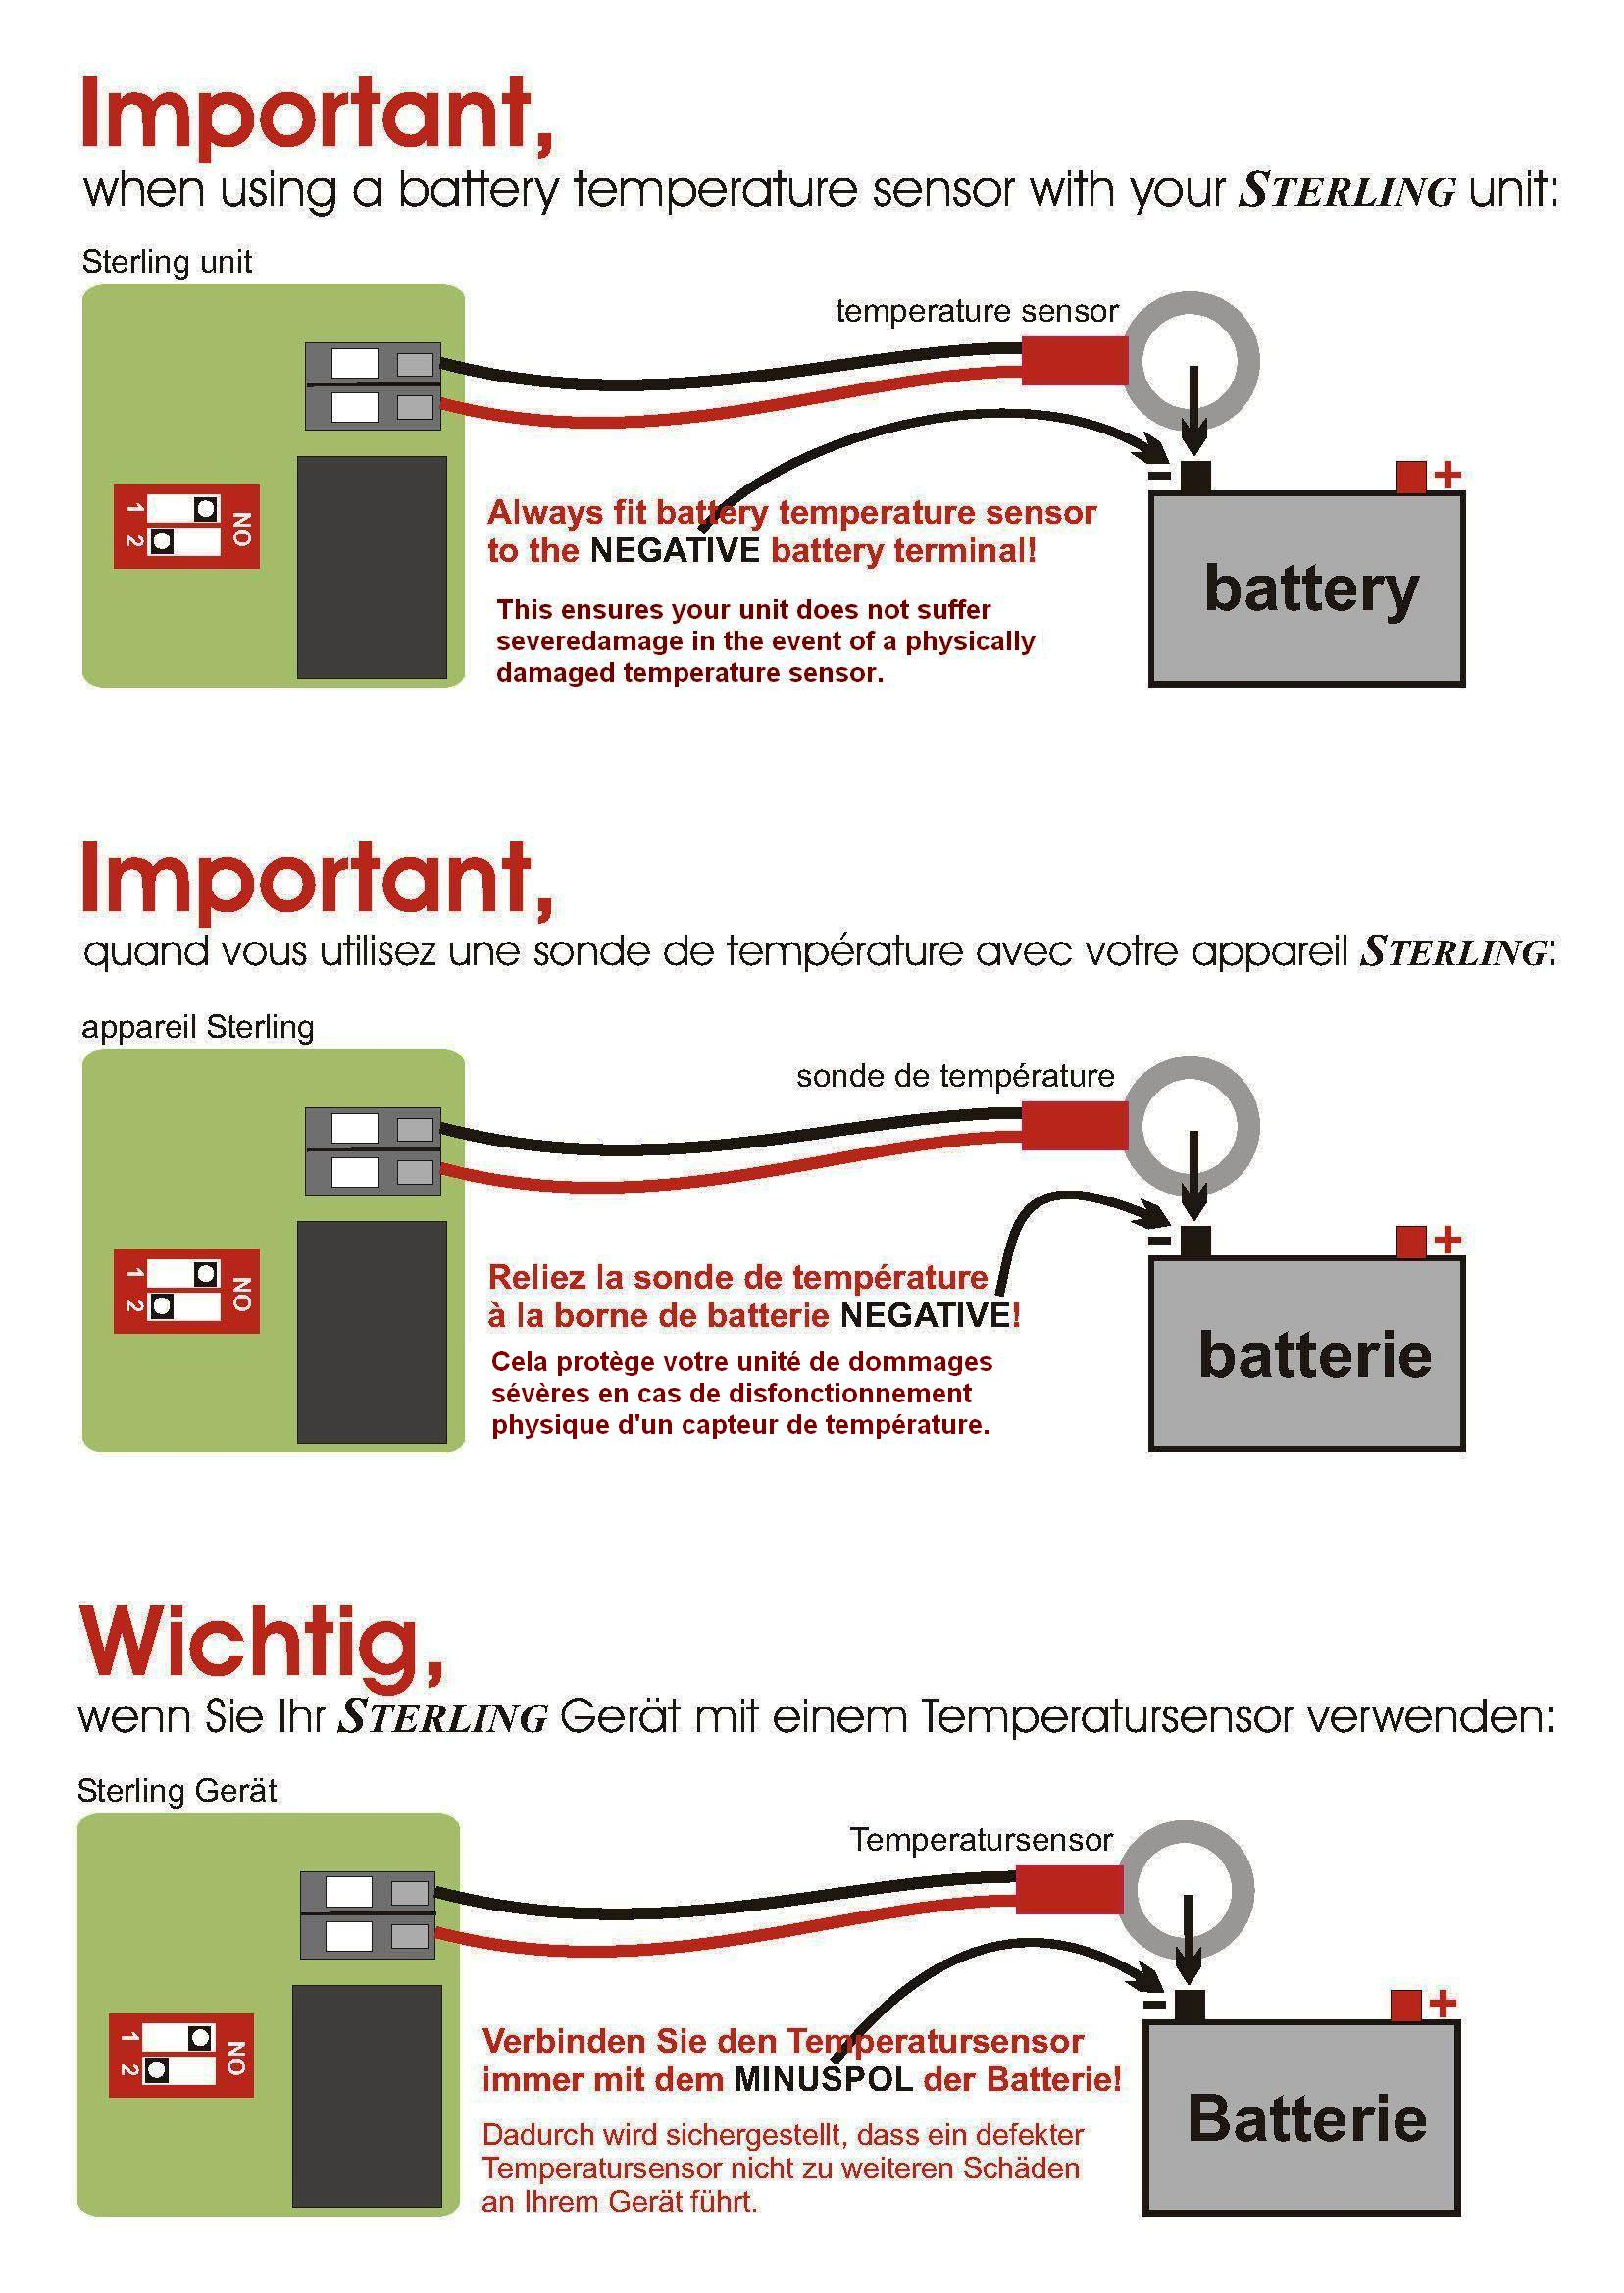 http://www.sterling-power-usa.com/library/Temp Sensor Installation  Warning.jpg. Wiring Diagram for a Sterling ...